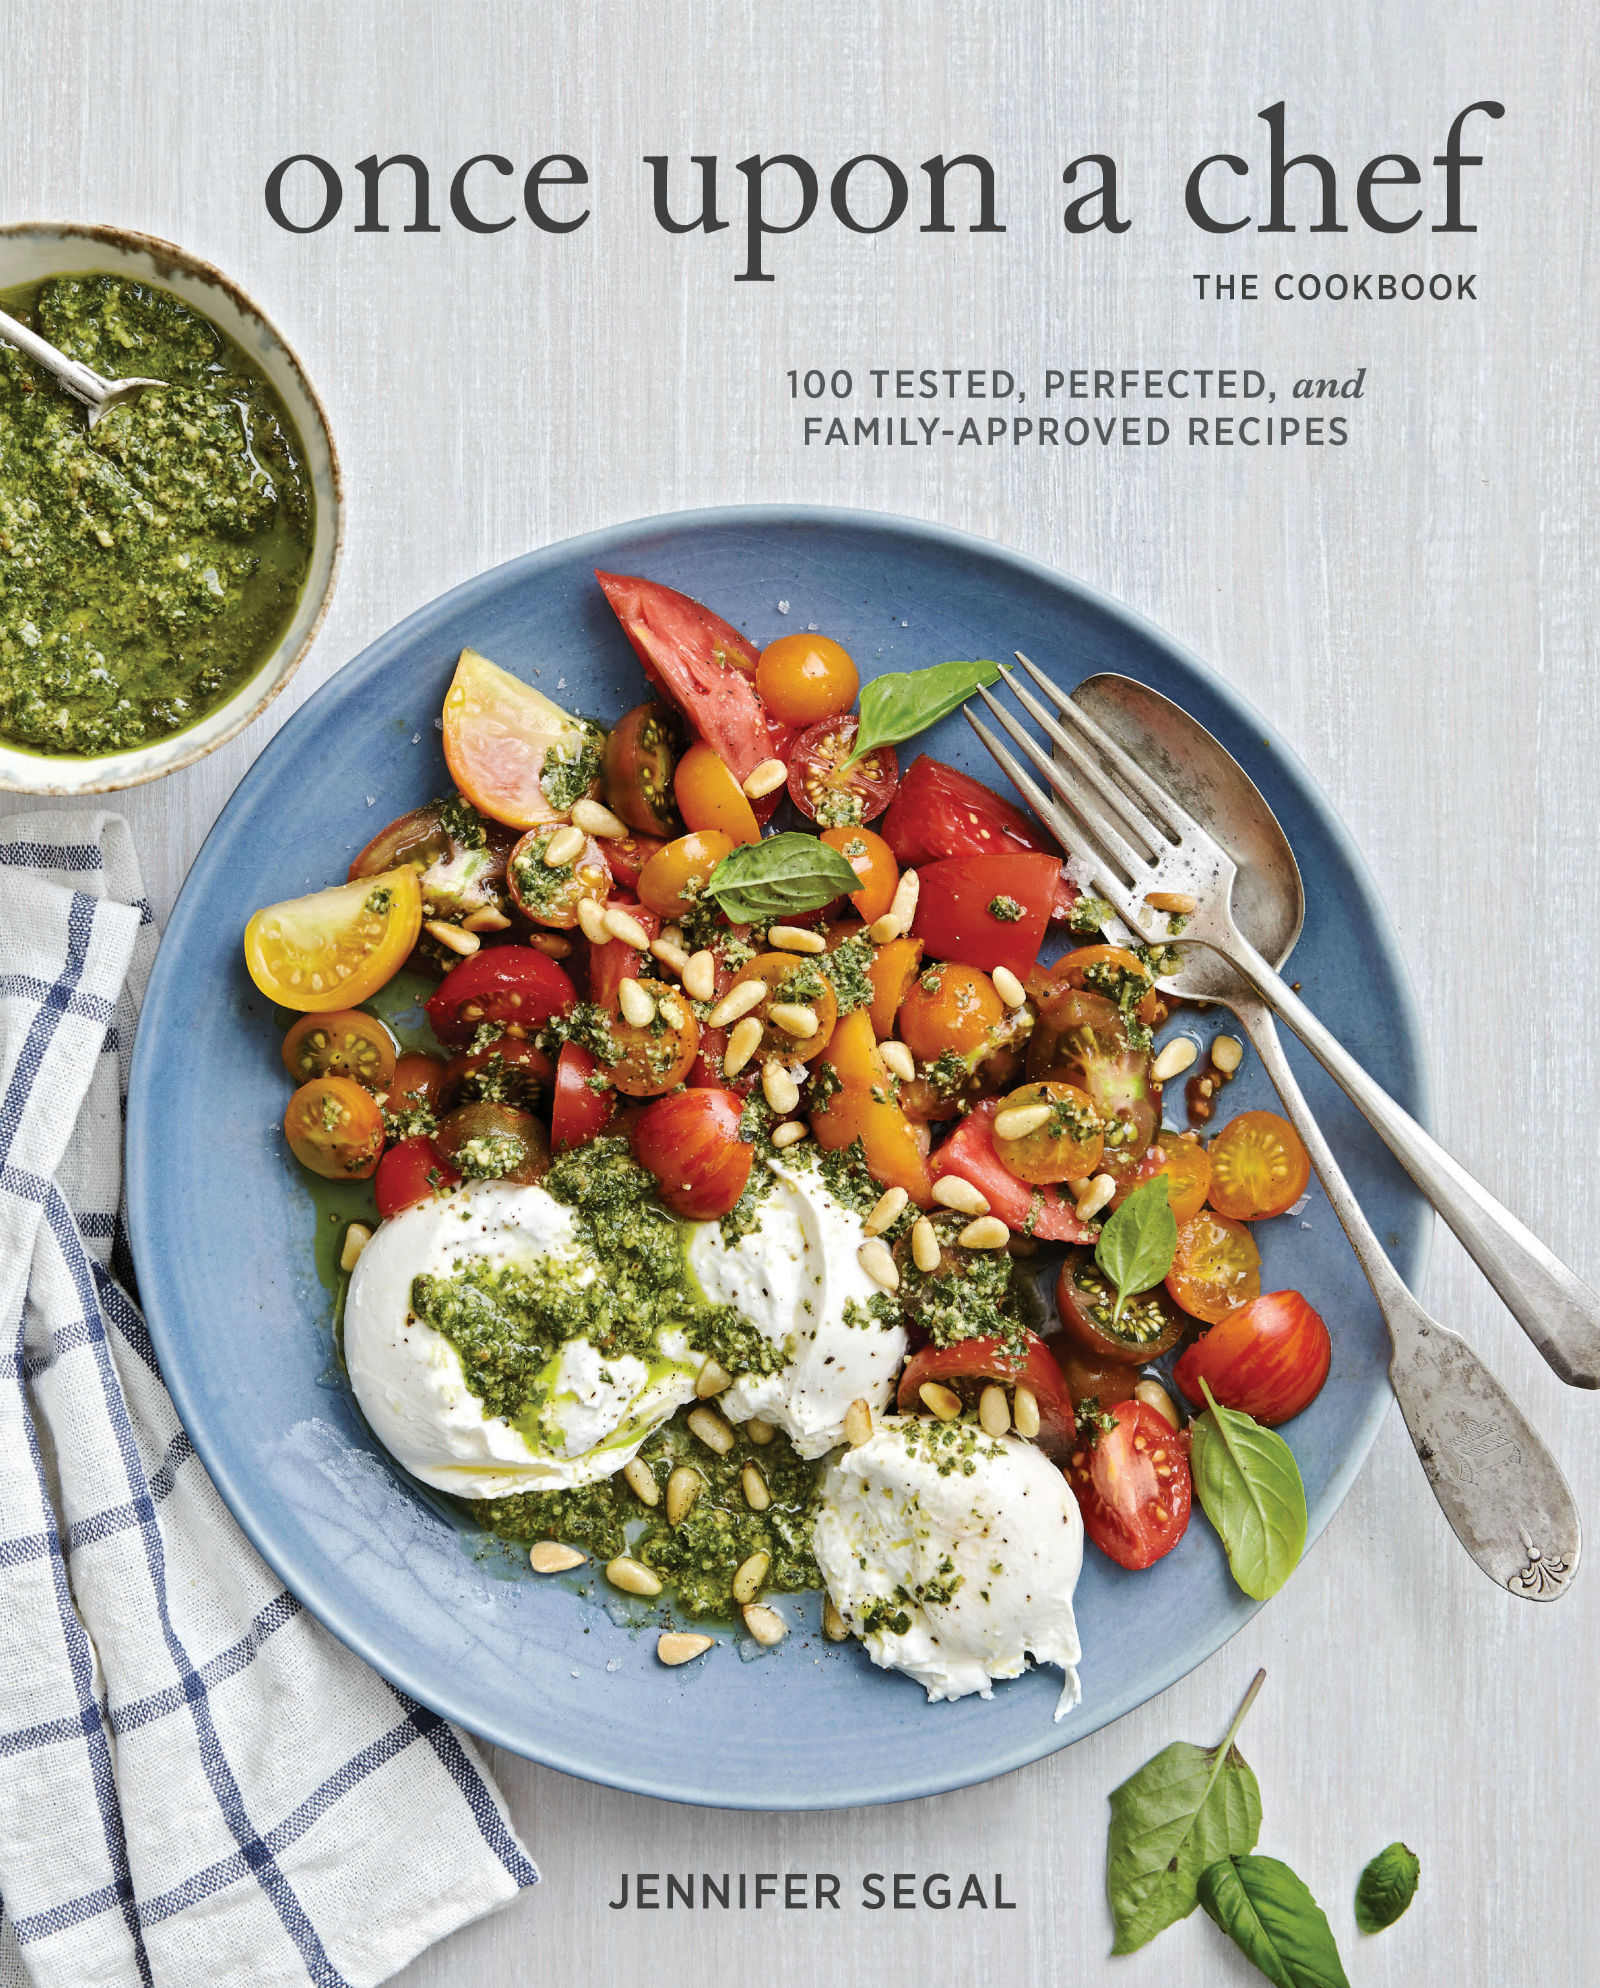 Jennifer Segal of 'Once Upon a Chef' Dishes on Perfect